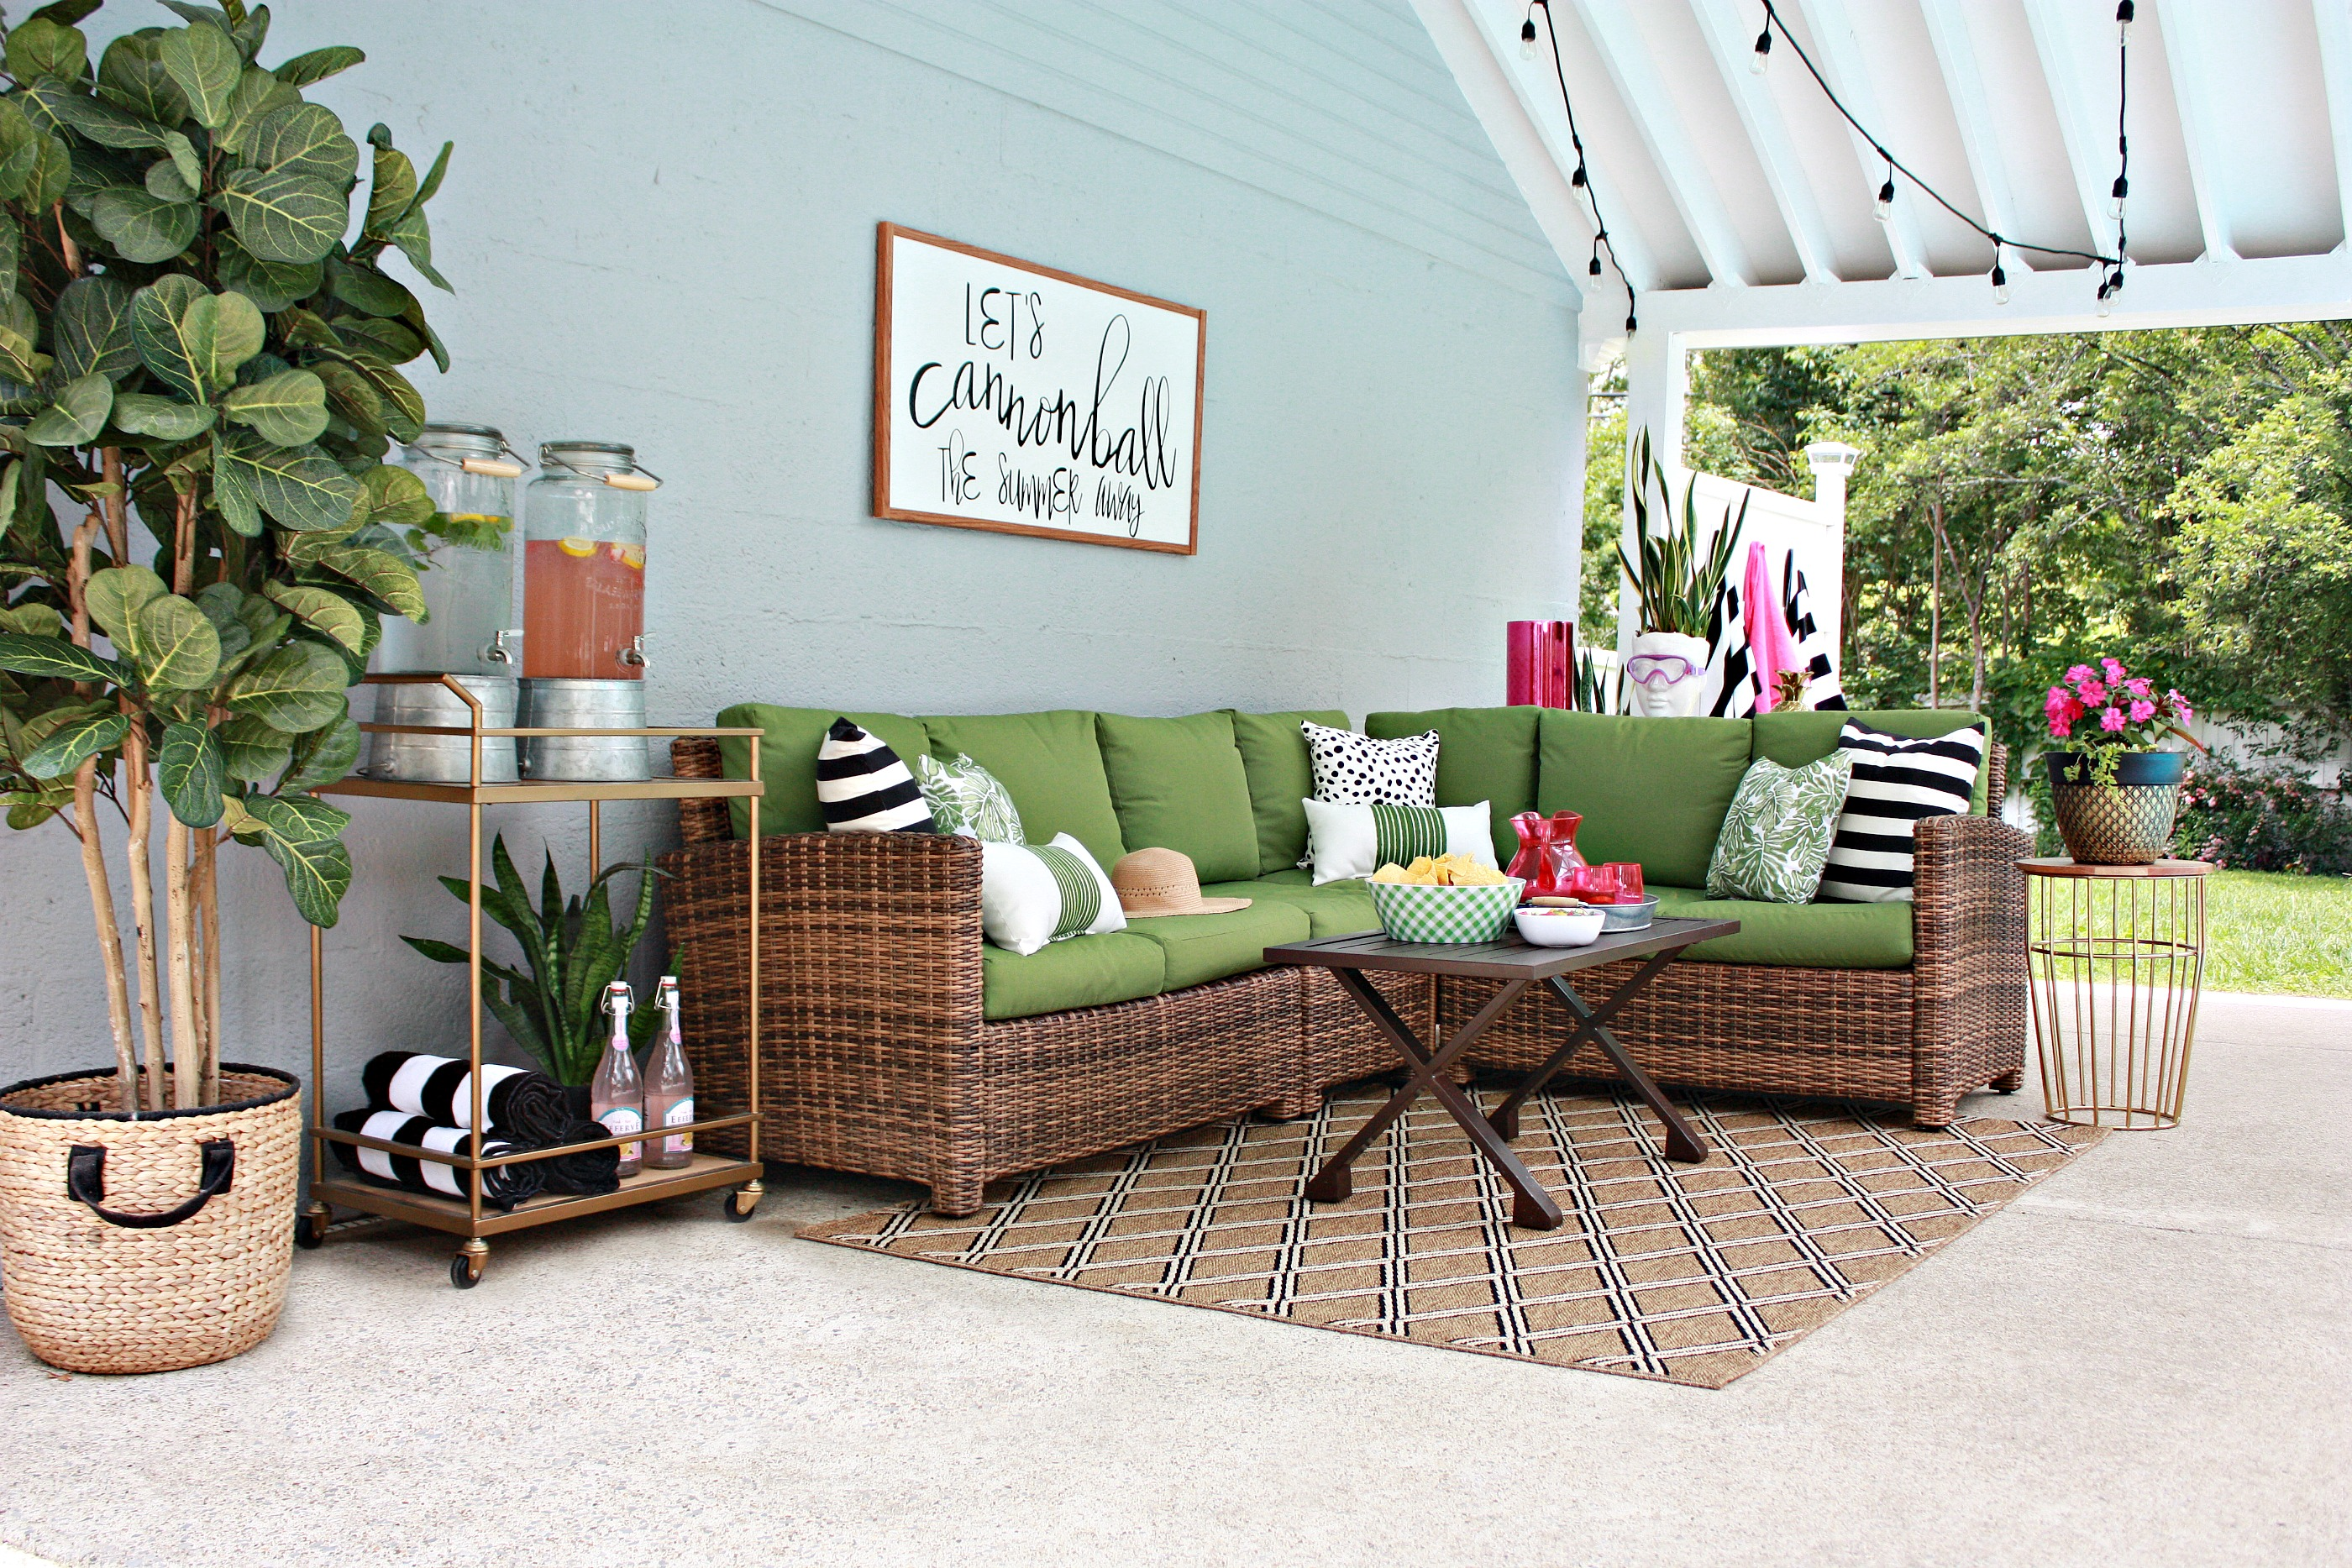 Covered Area Outdoor Space